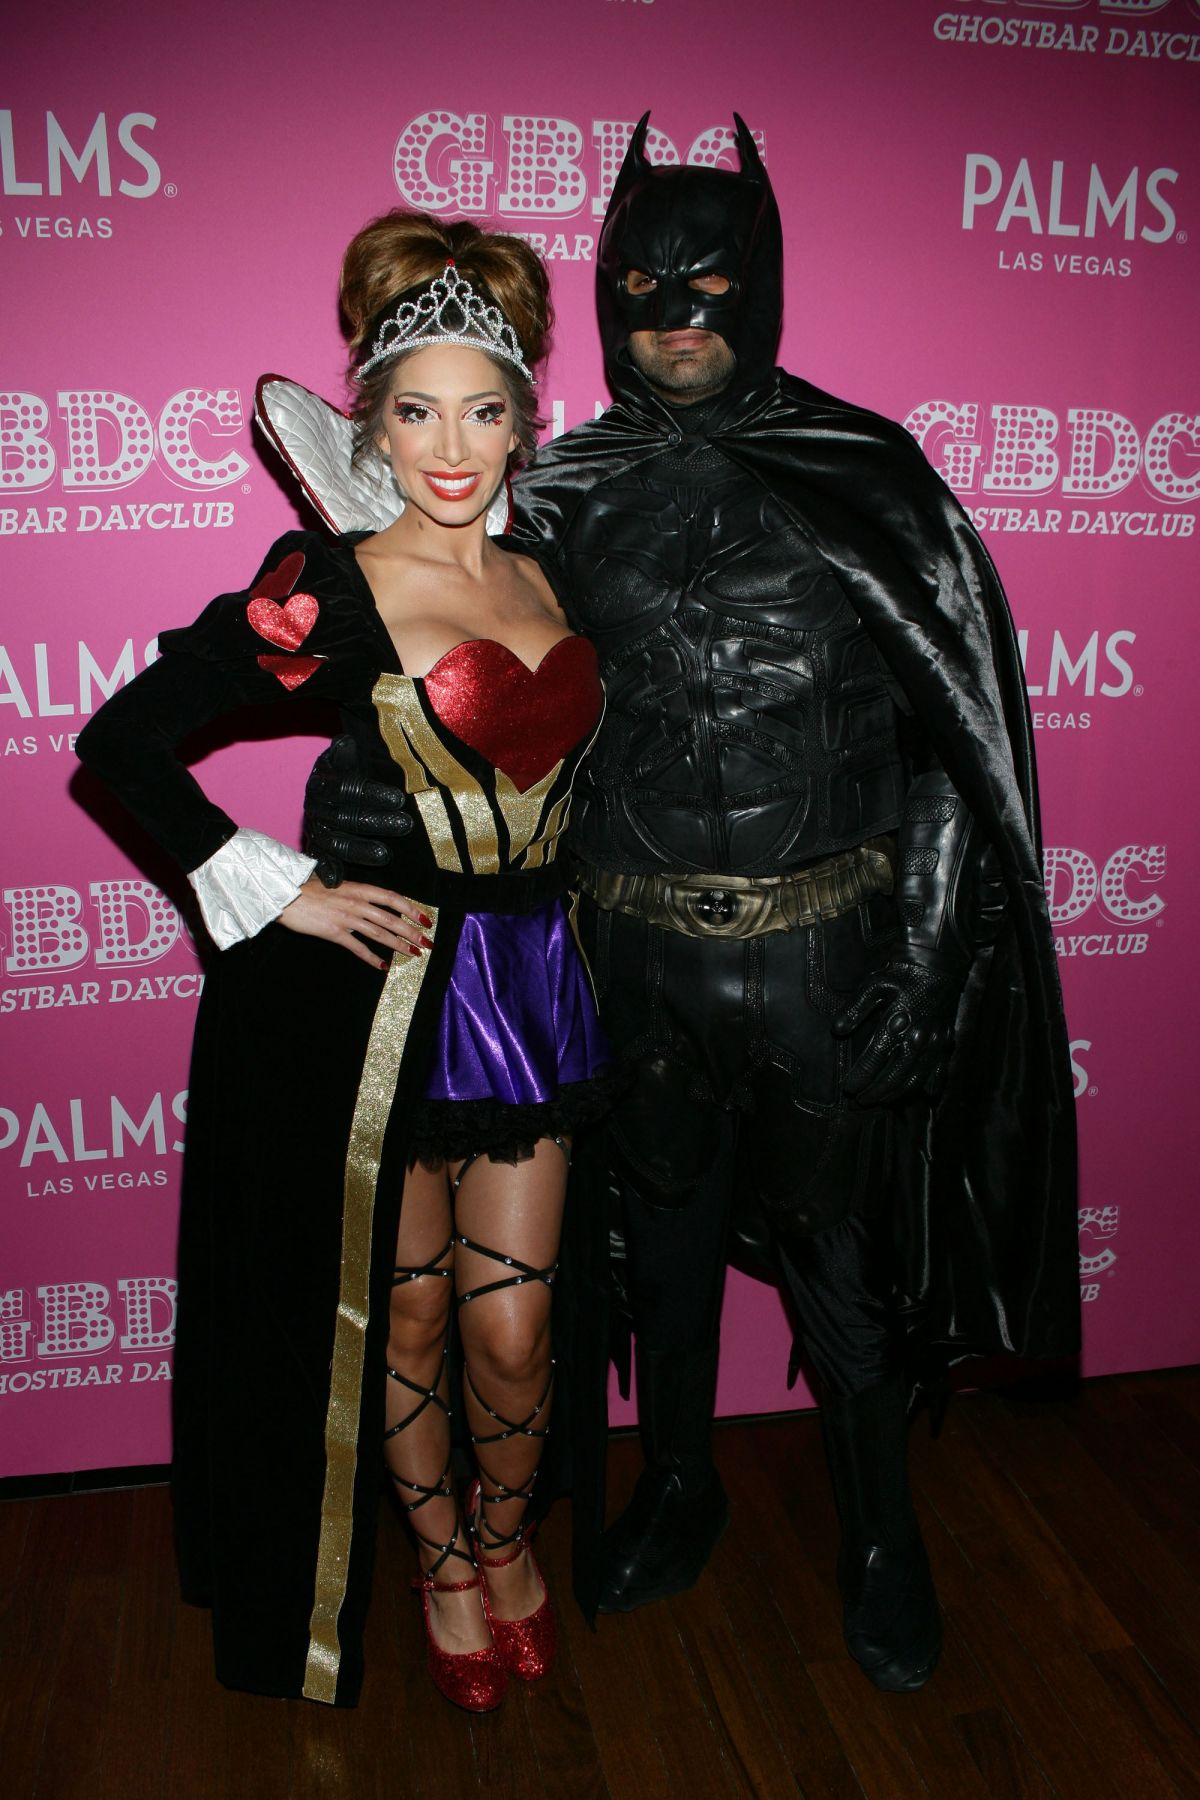 farrah abraham at day of the killer costumes halloween party in las vegas 1025 - Las Vegas Halloween Costume